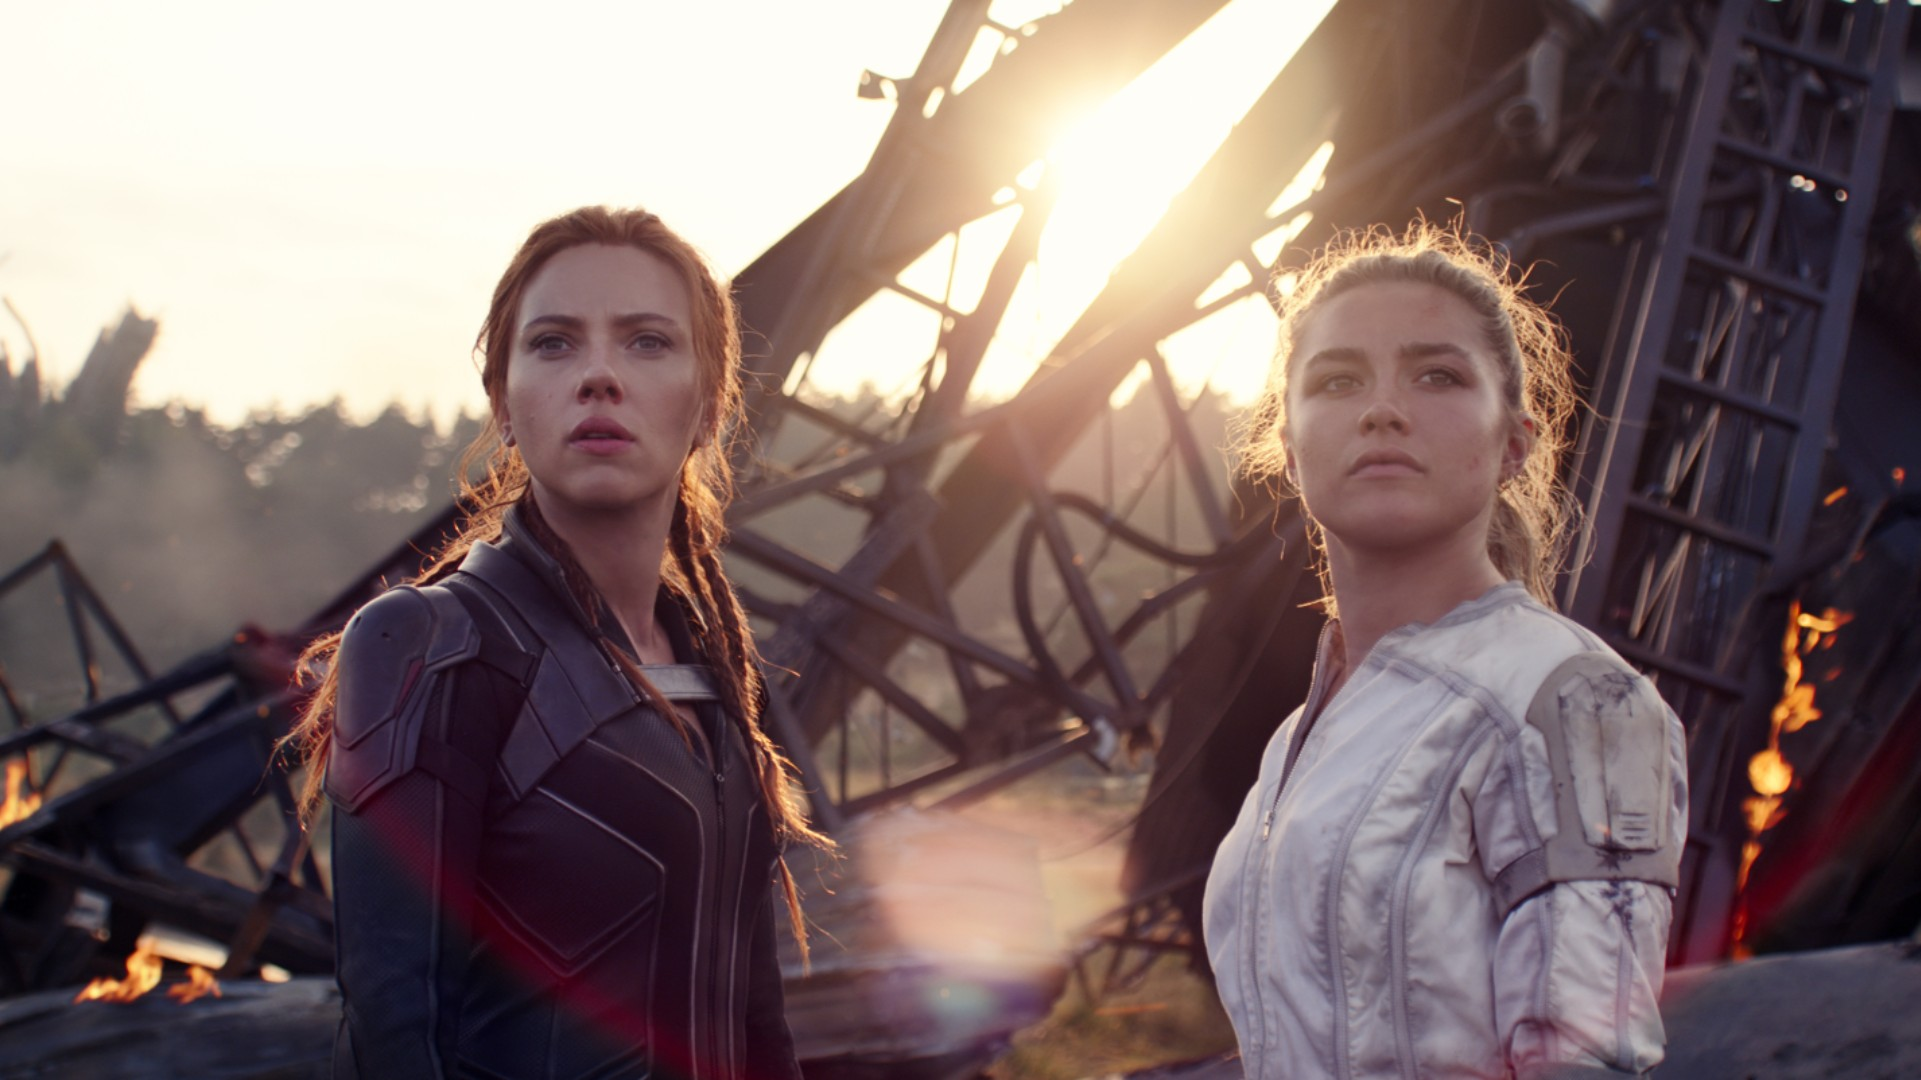 Black Widow Review: An Action-Packed Spy Thriller